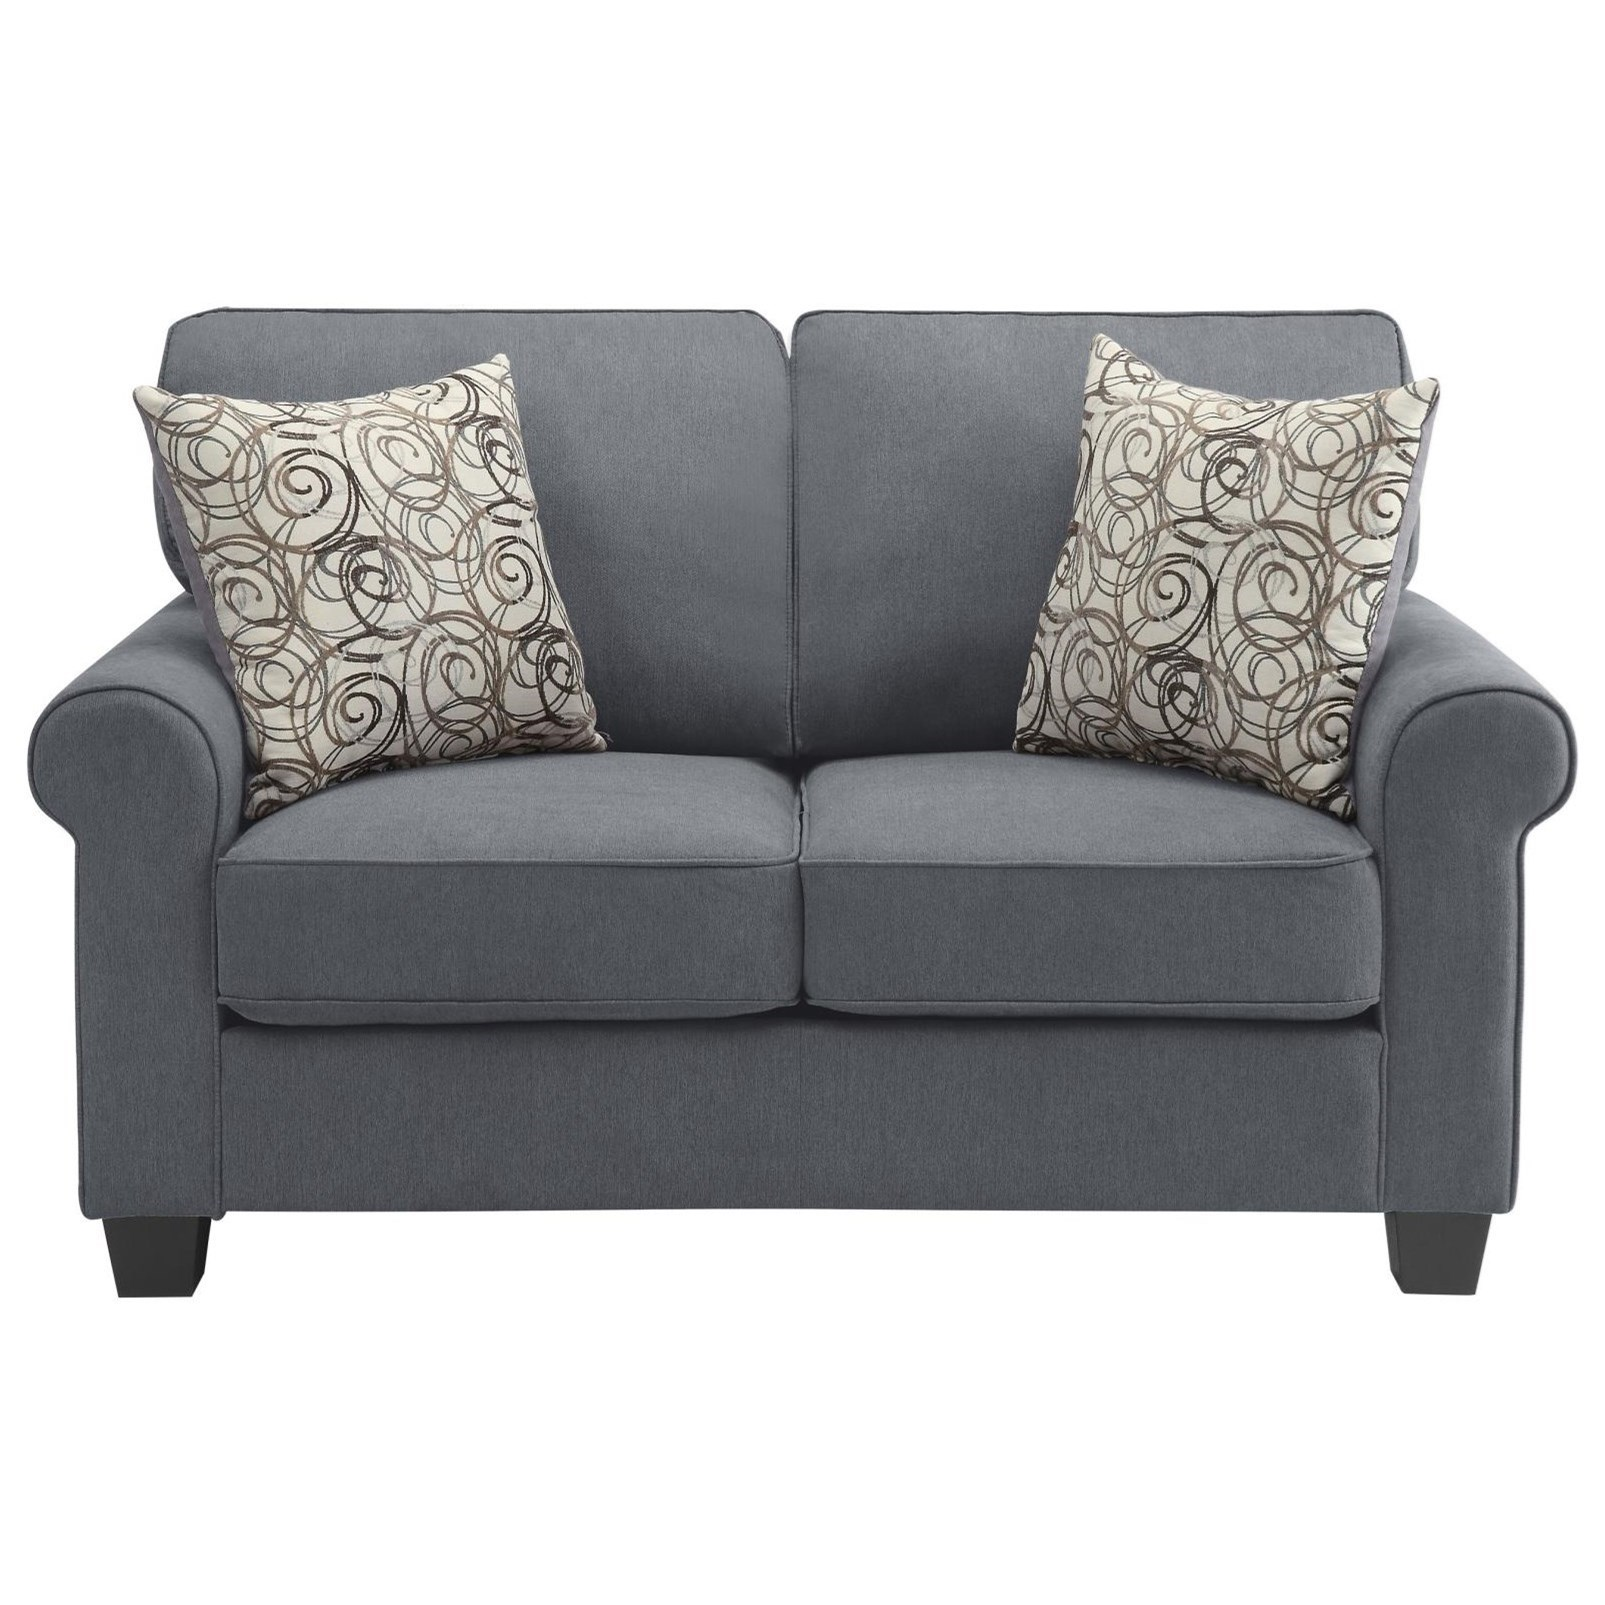 Selkirk Love Seat by Homelegance at Dream Home Interiors